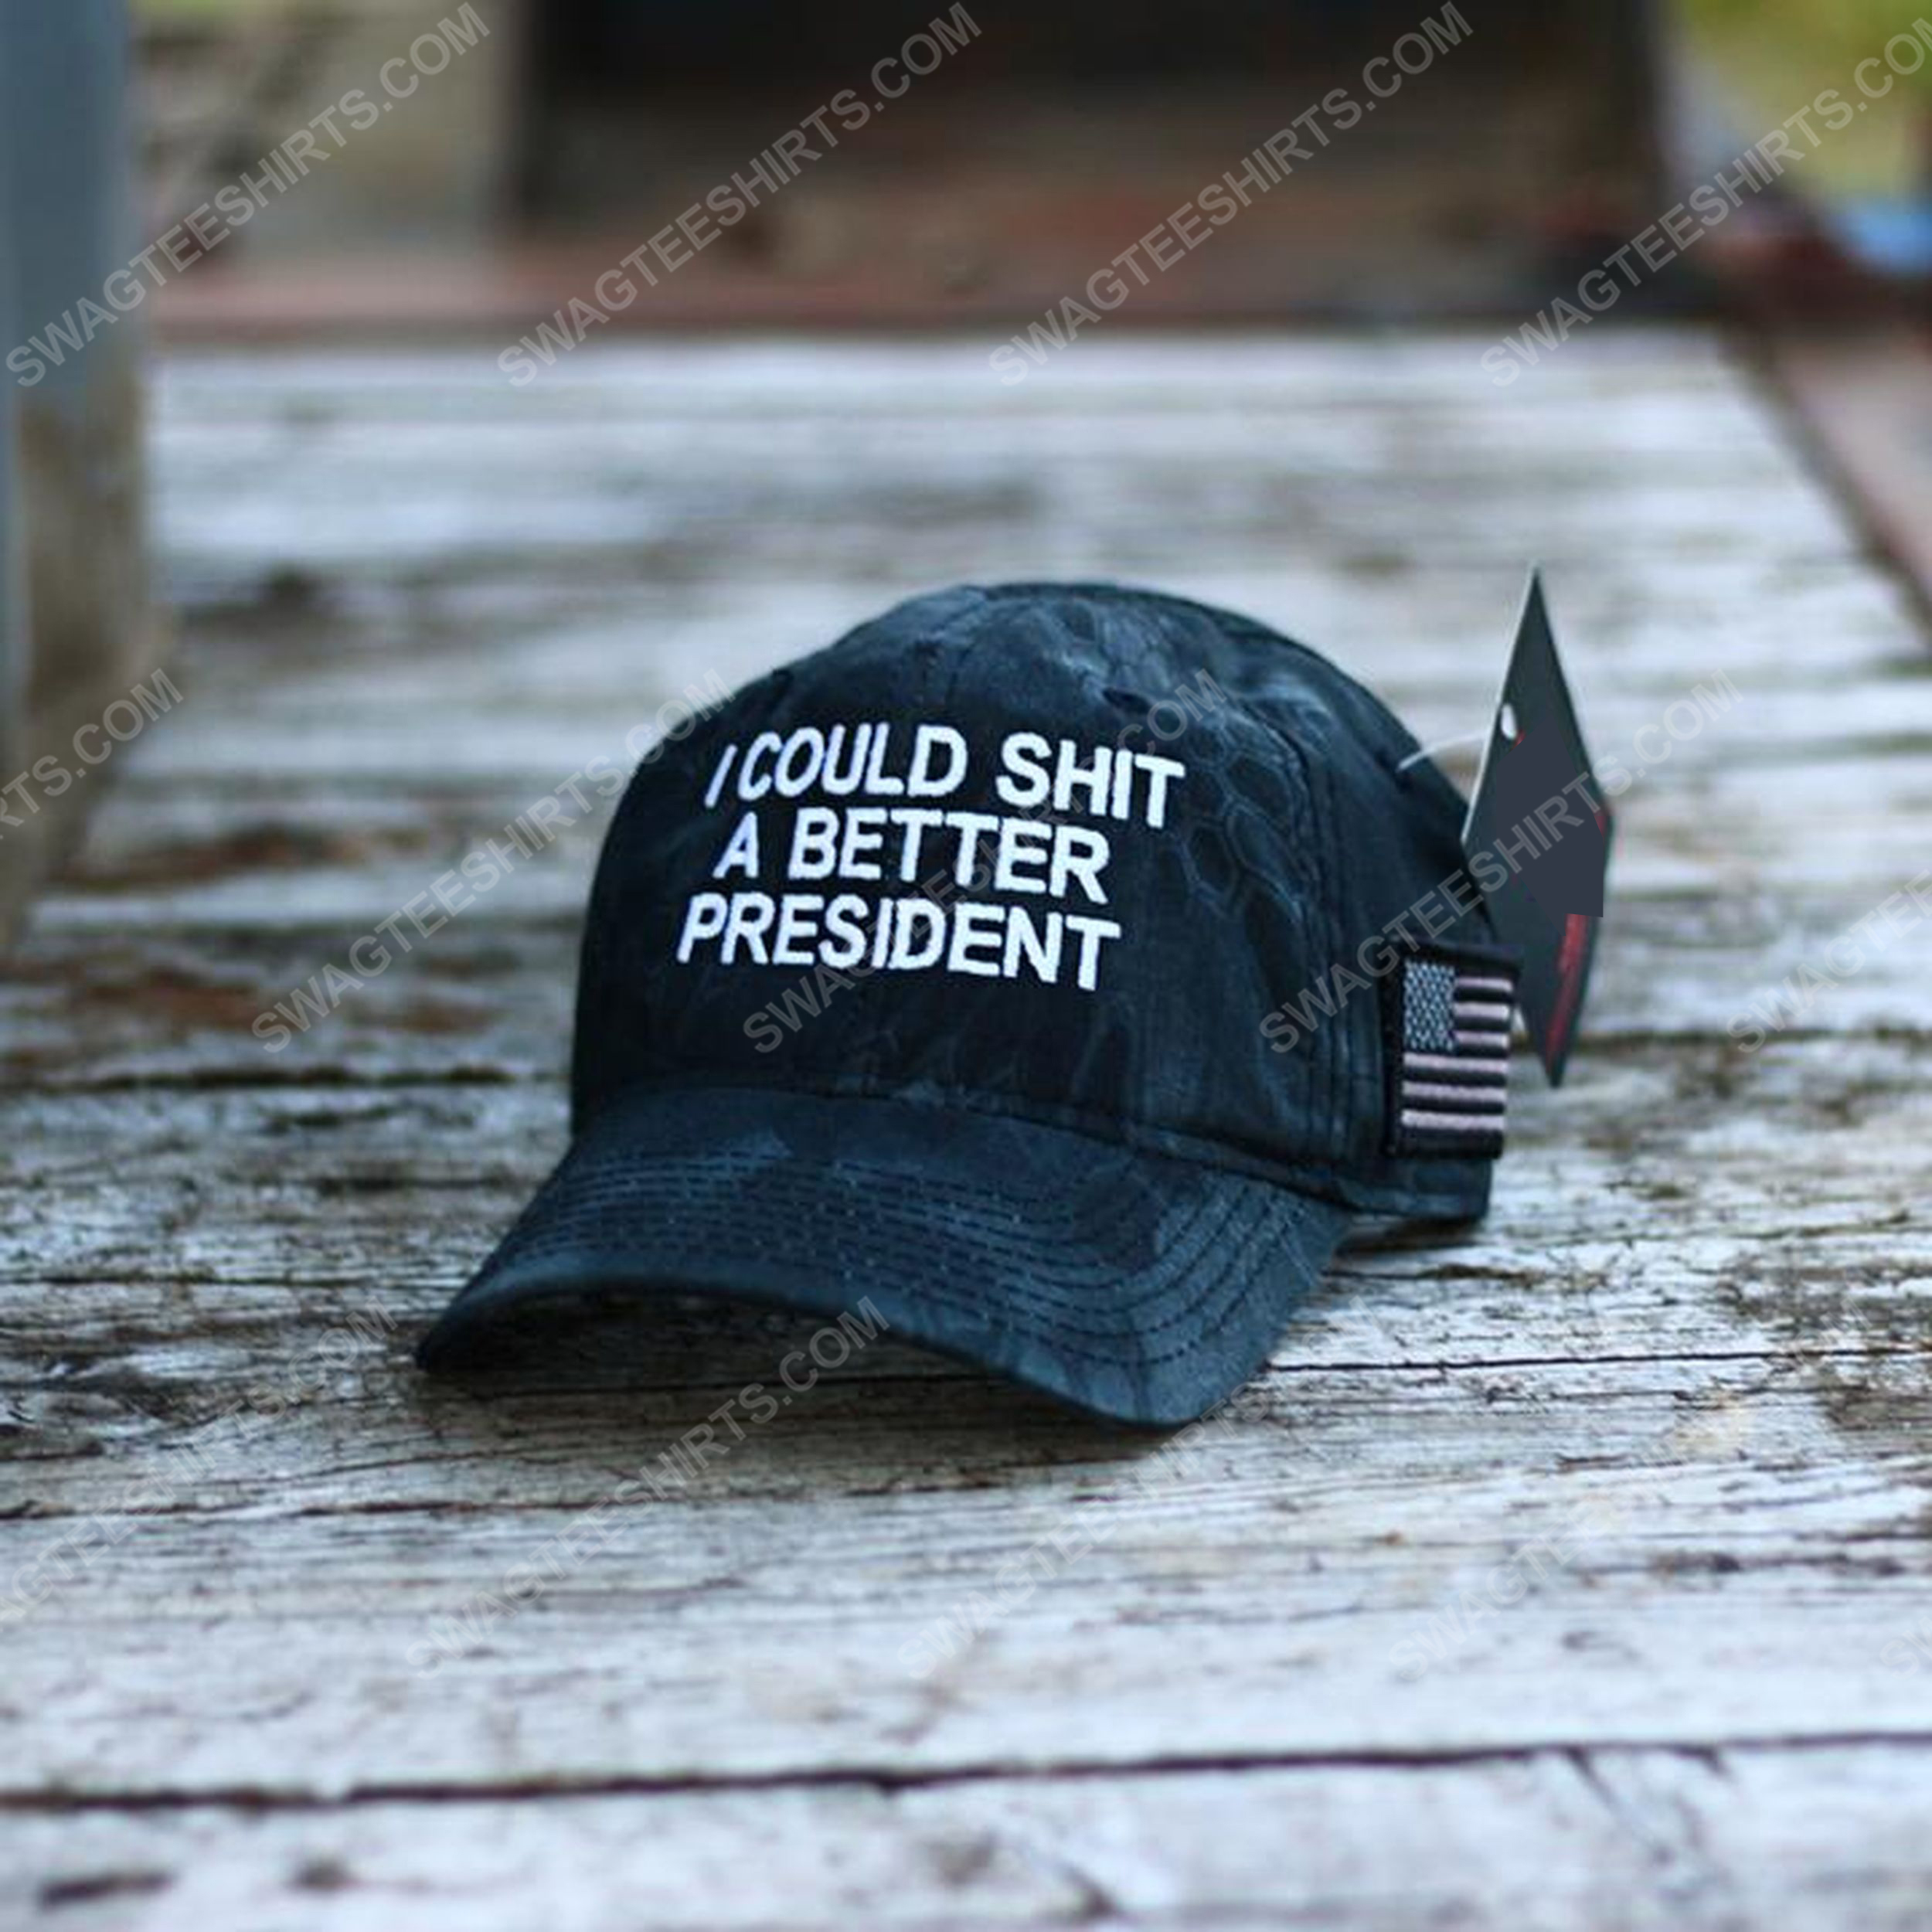 I could shit a better president full print classic hat 1 - Copy (2)